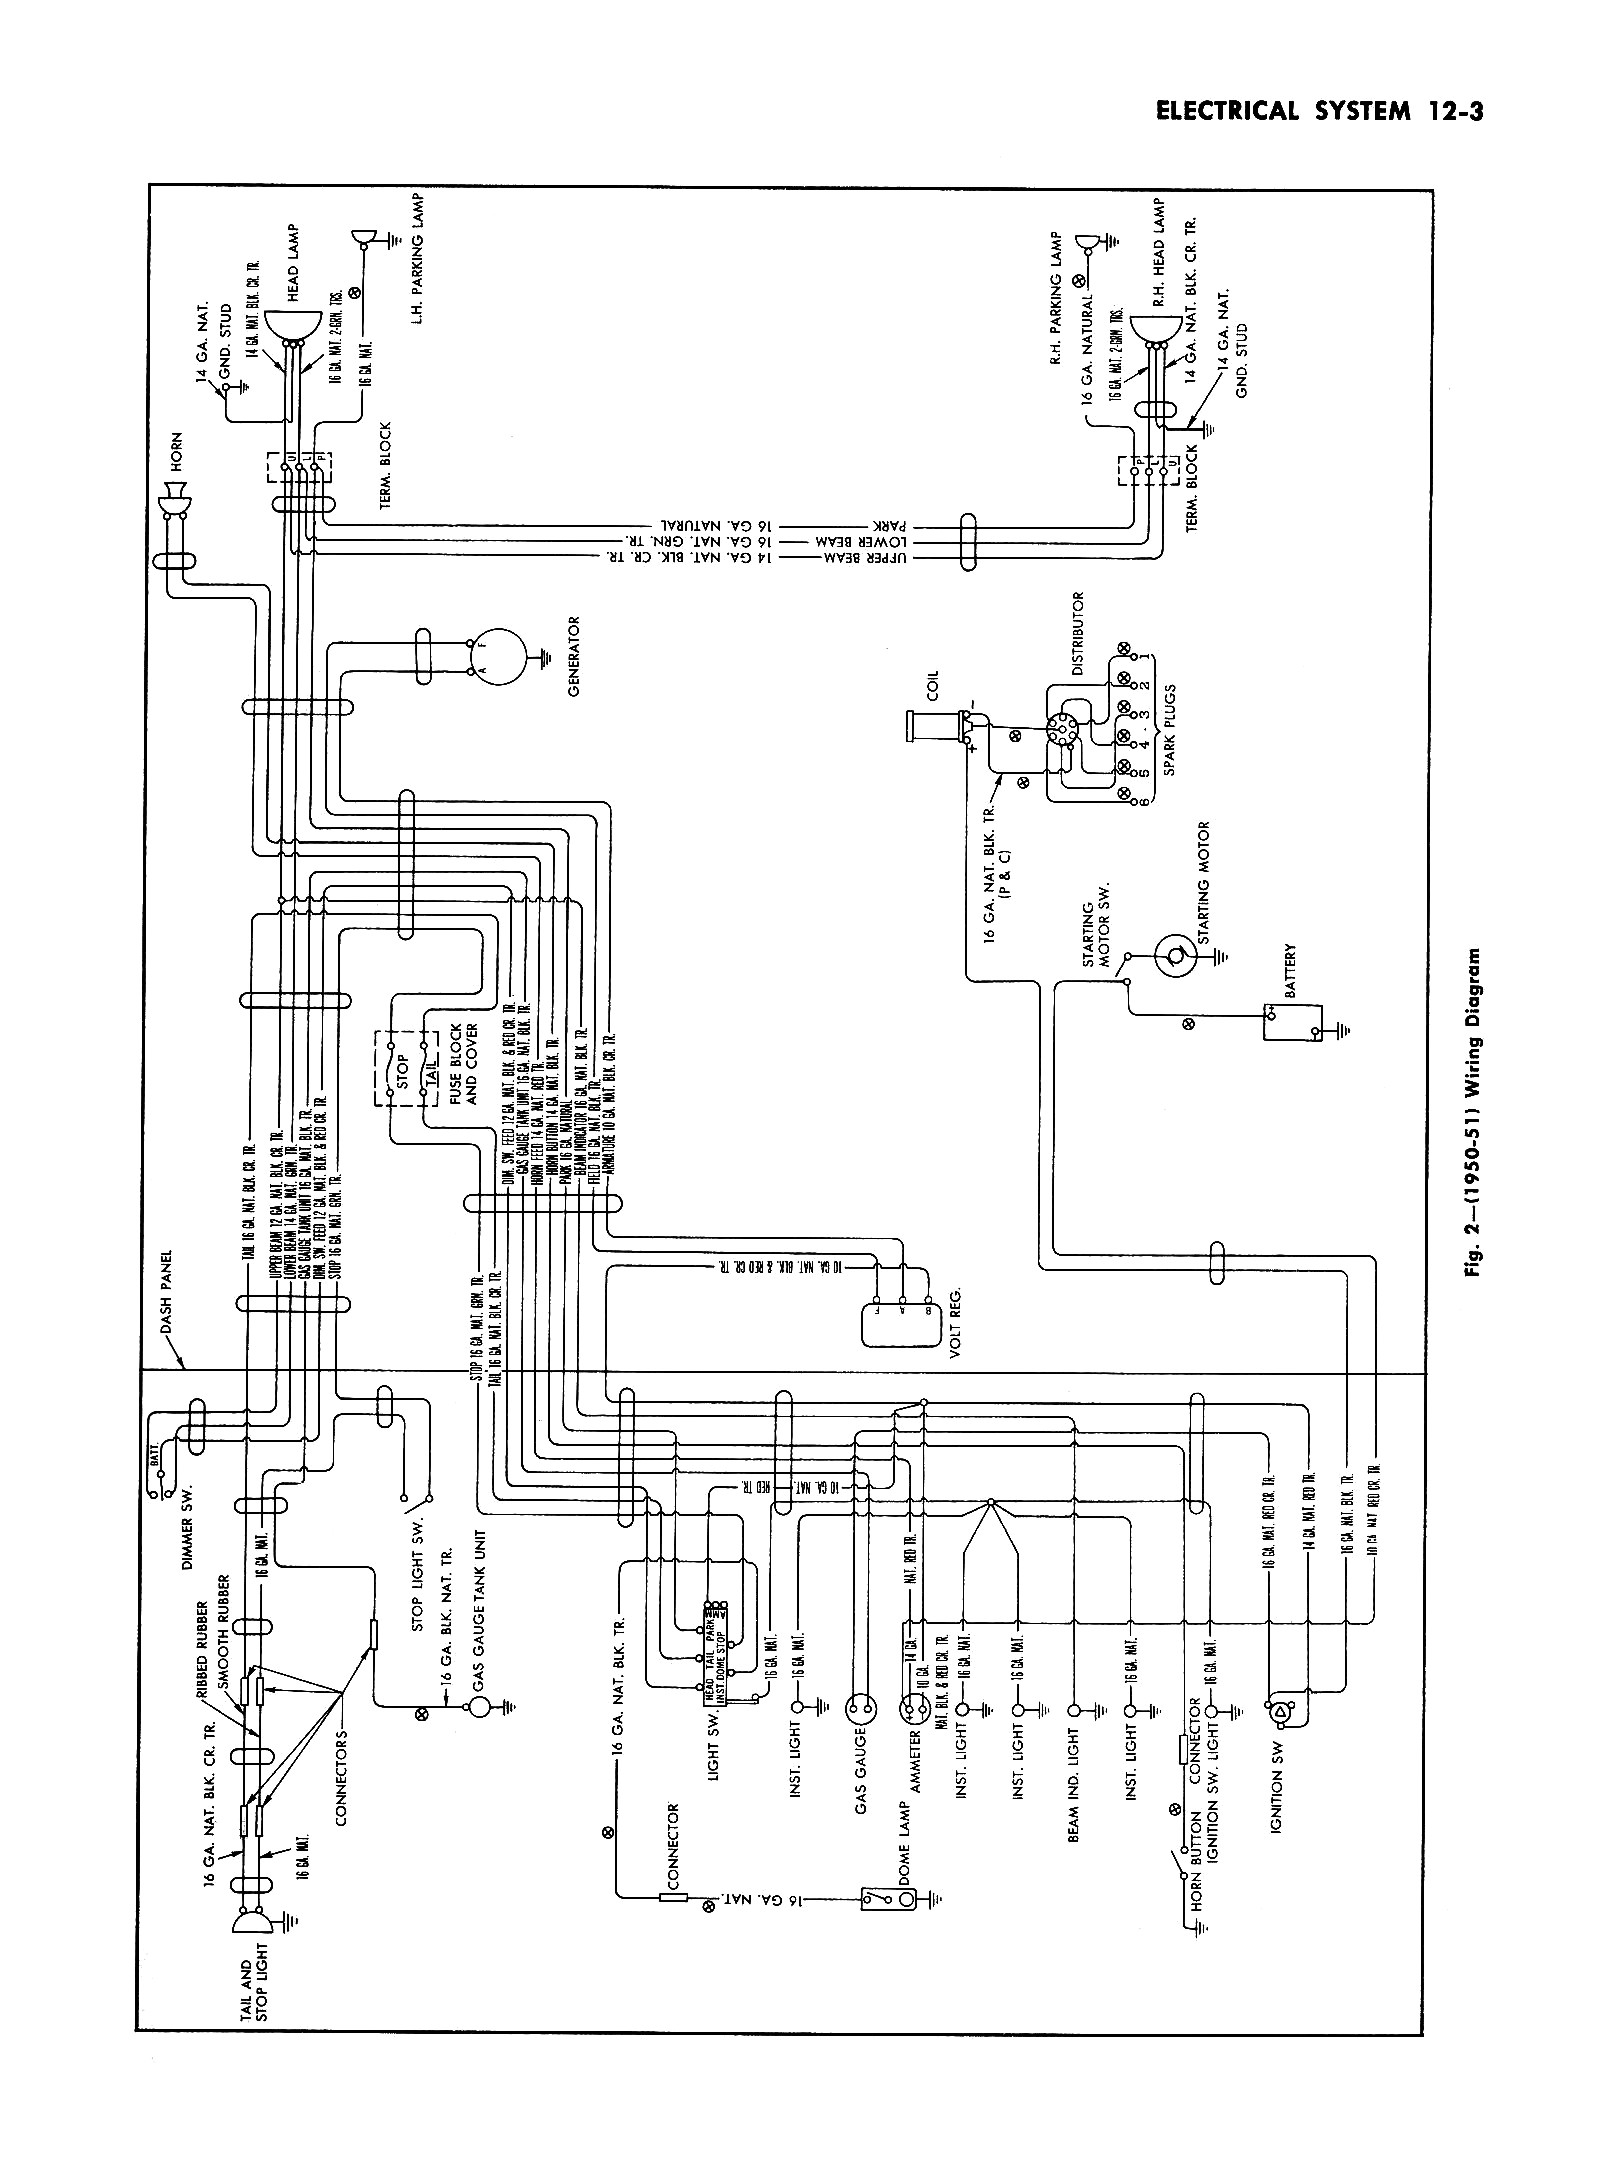 1950 dodge truck wiring diagram wiring diagram database 1966 ford truck fuse block wiring diagram chevy wiring diagrams 2001 dodge truck wiring diagram 1950 dodge truck wiring diagram